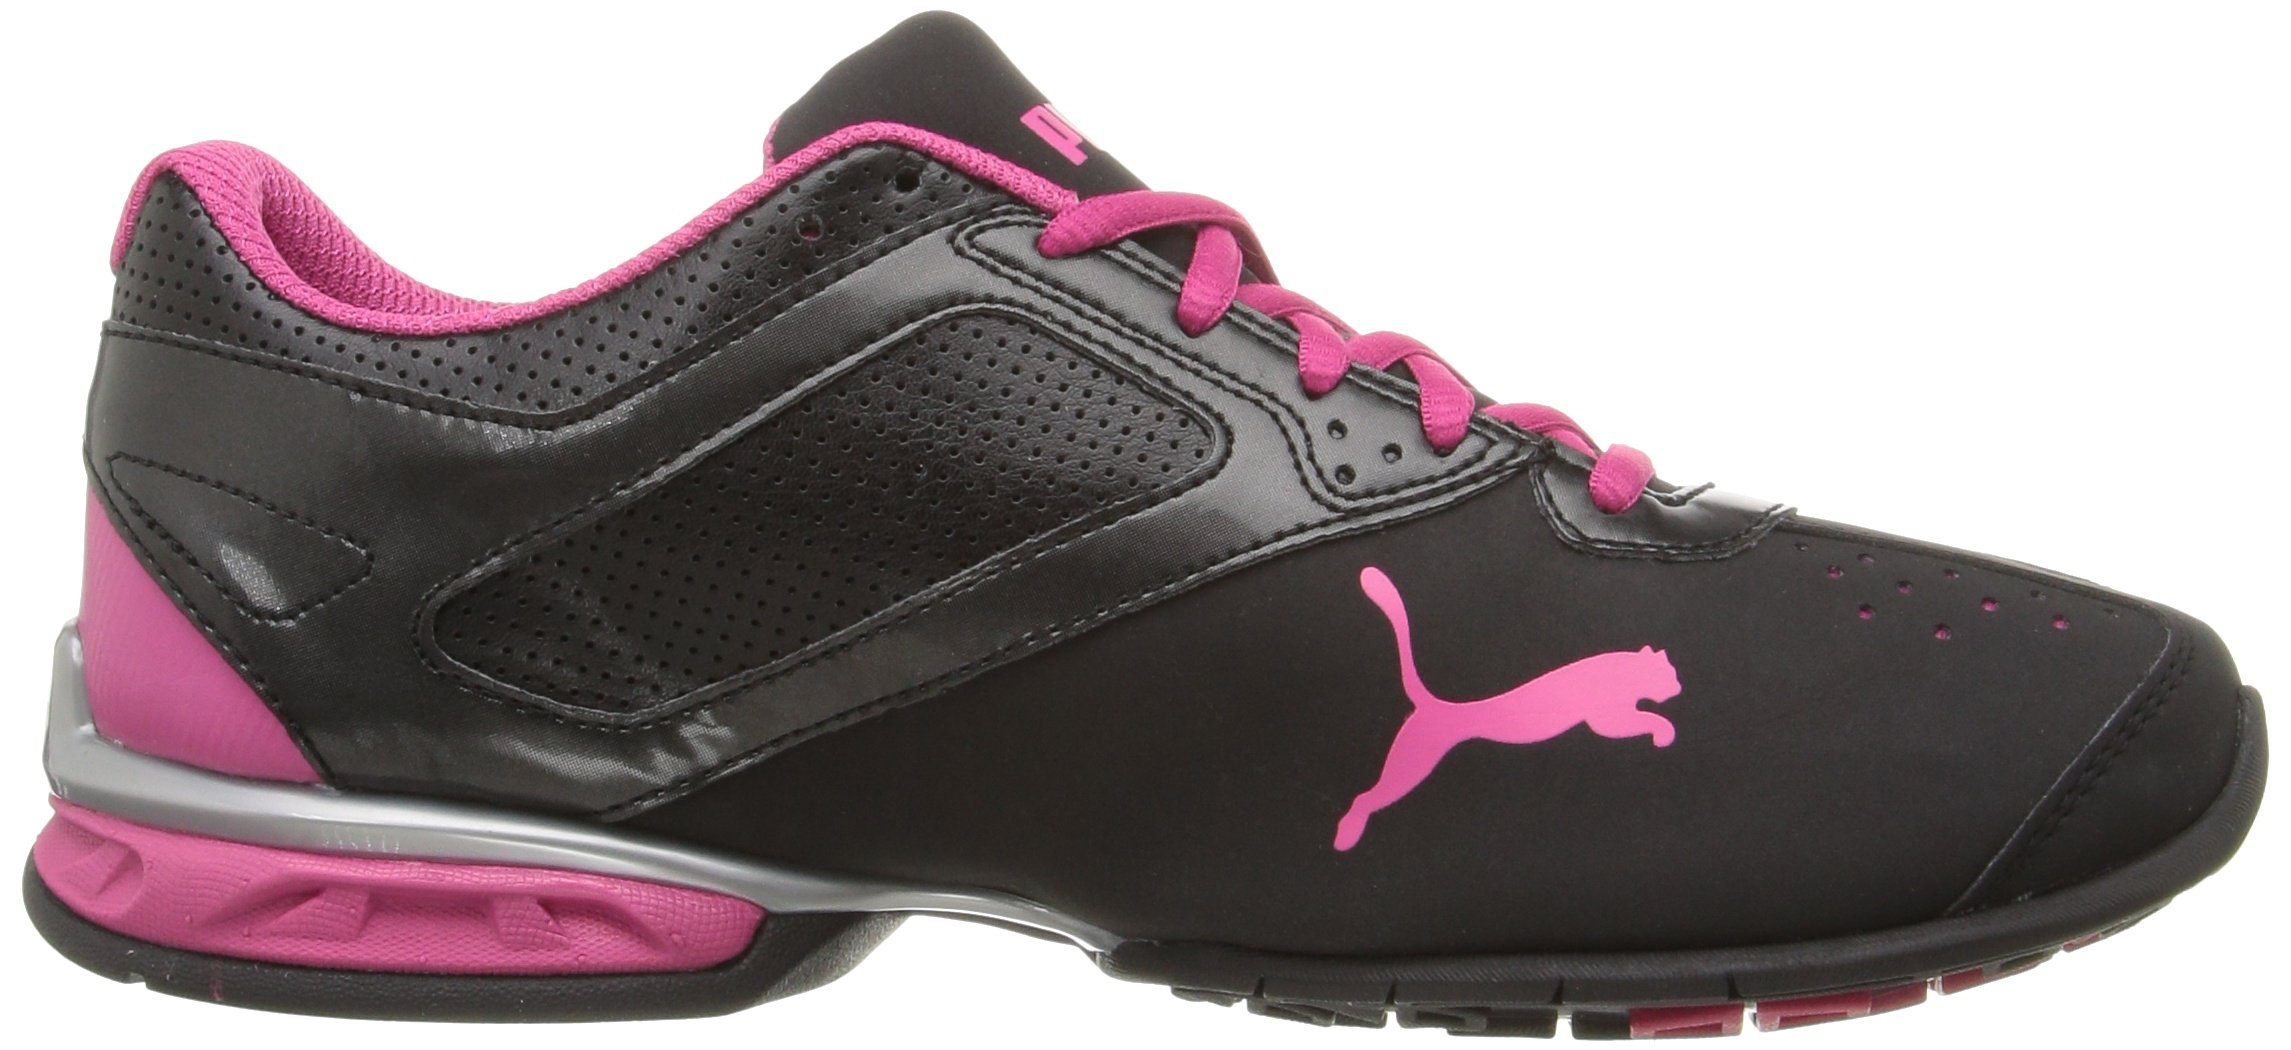 PUMA Women's Tazon 6 WN's fm Cross-Trainer Shoe Black Silver/Beetroot Purple, 7 M US by PUMA (Image #7)